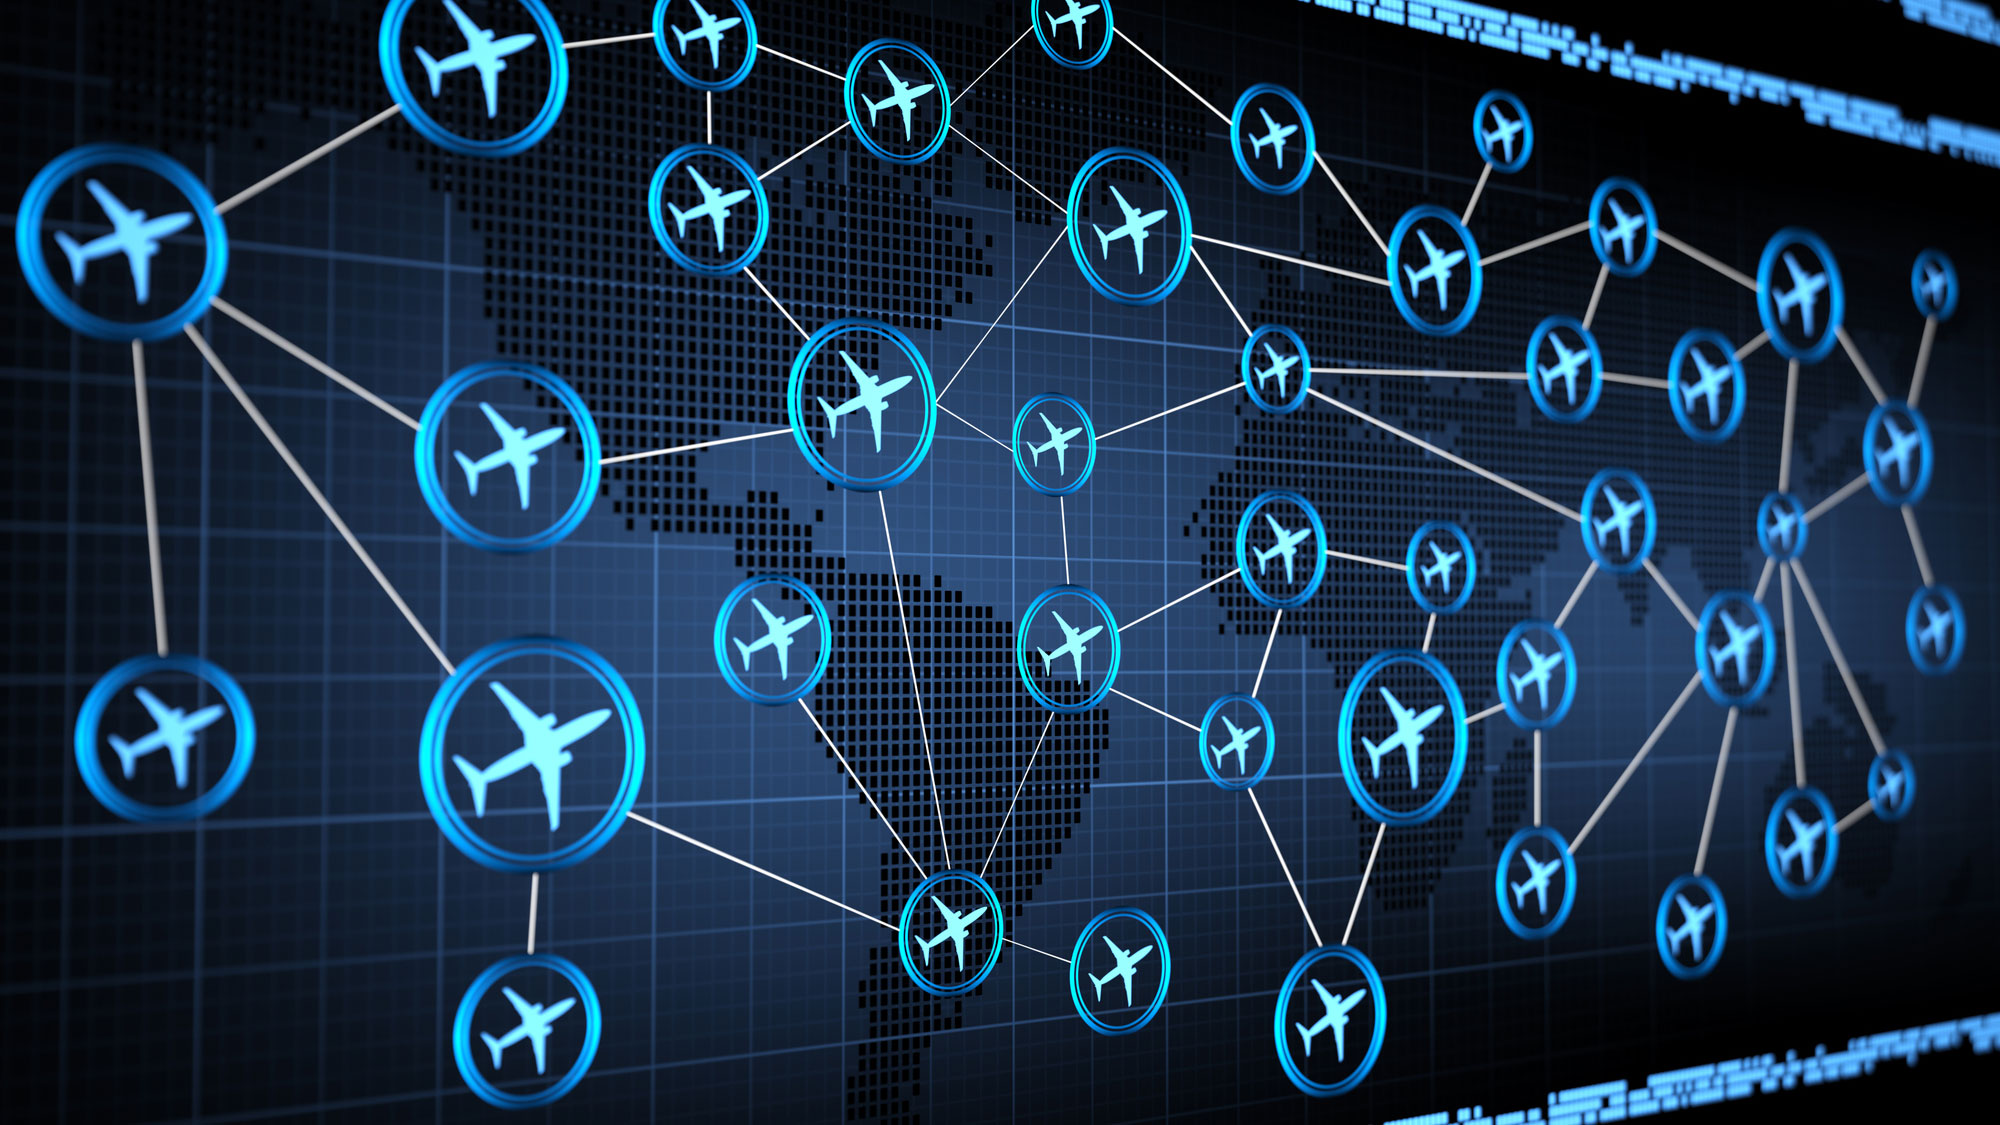 Why should airlines reassess their digital strategies going forward?